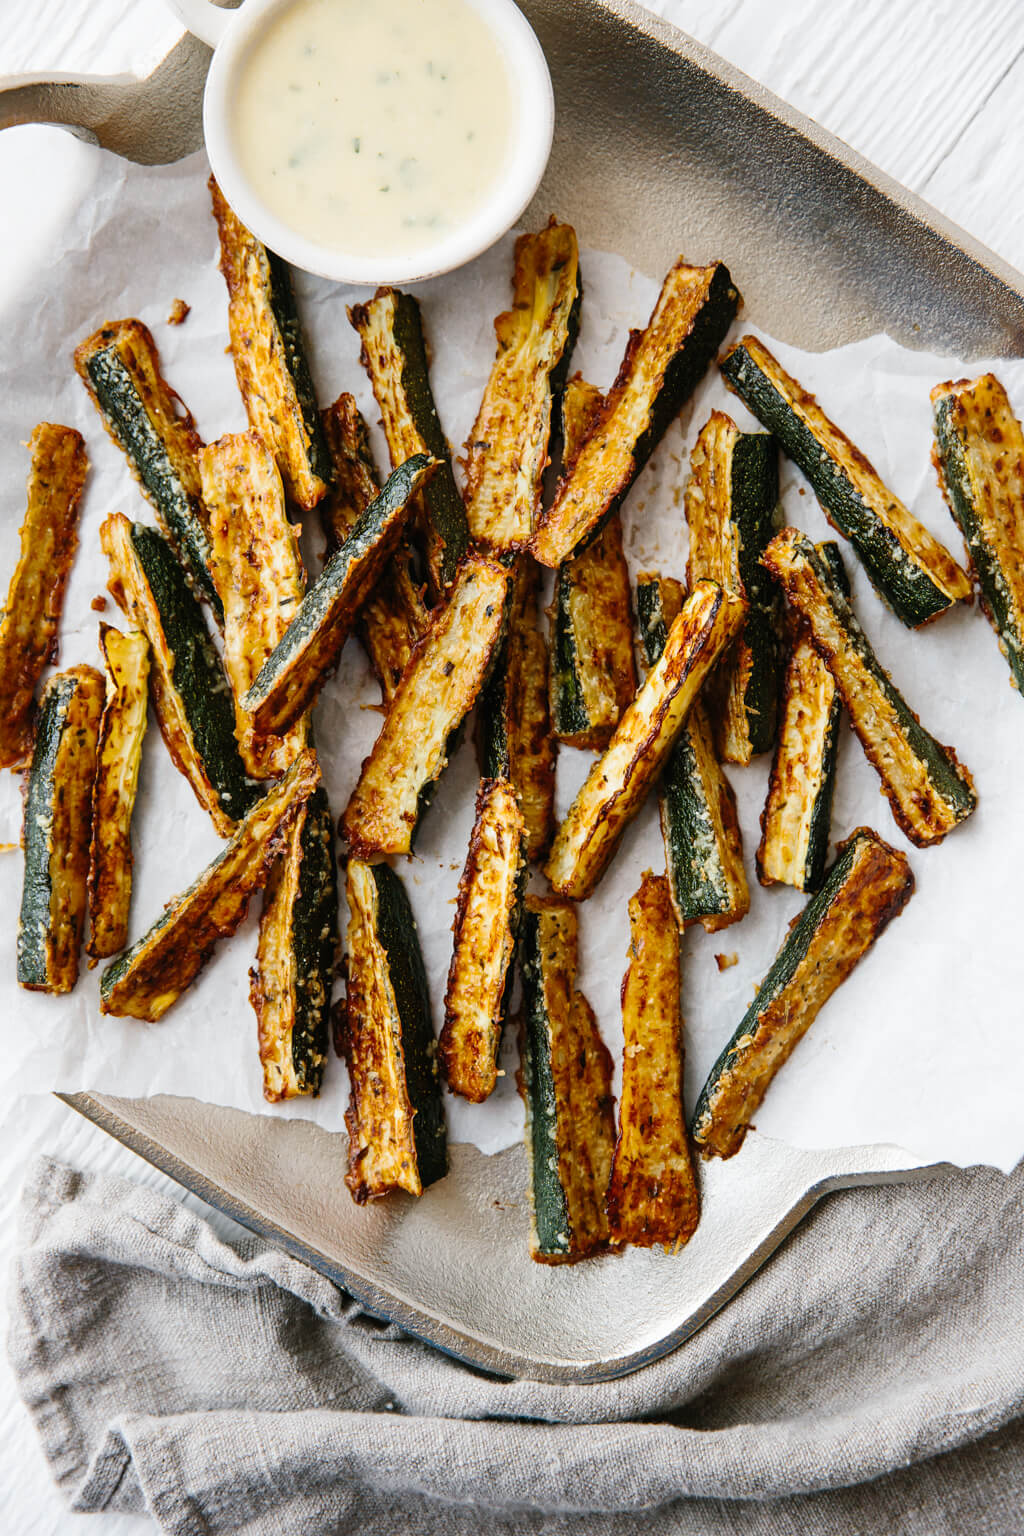 Zucchini fries on a platter.